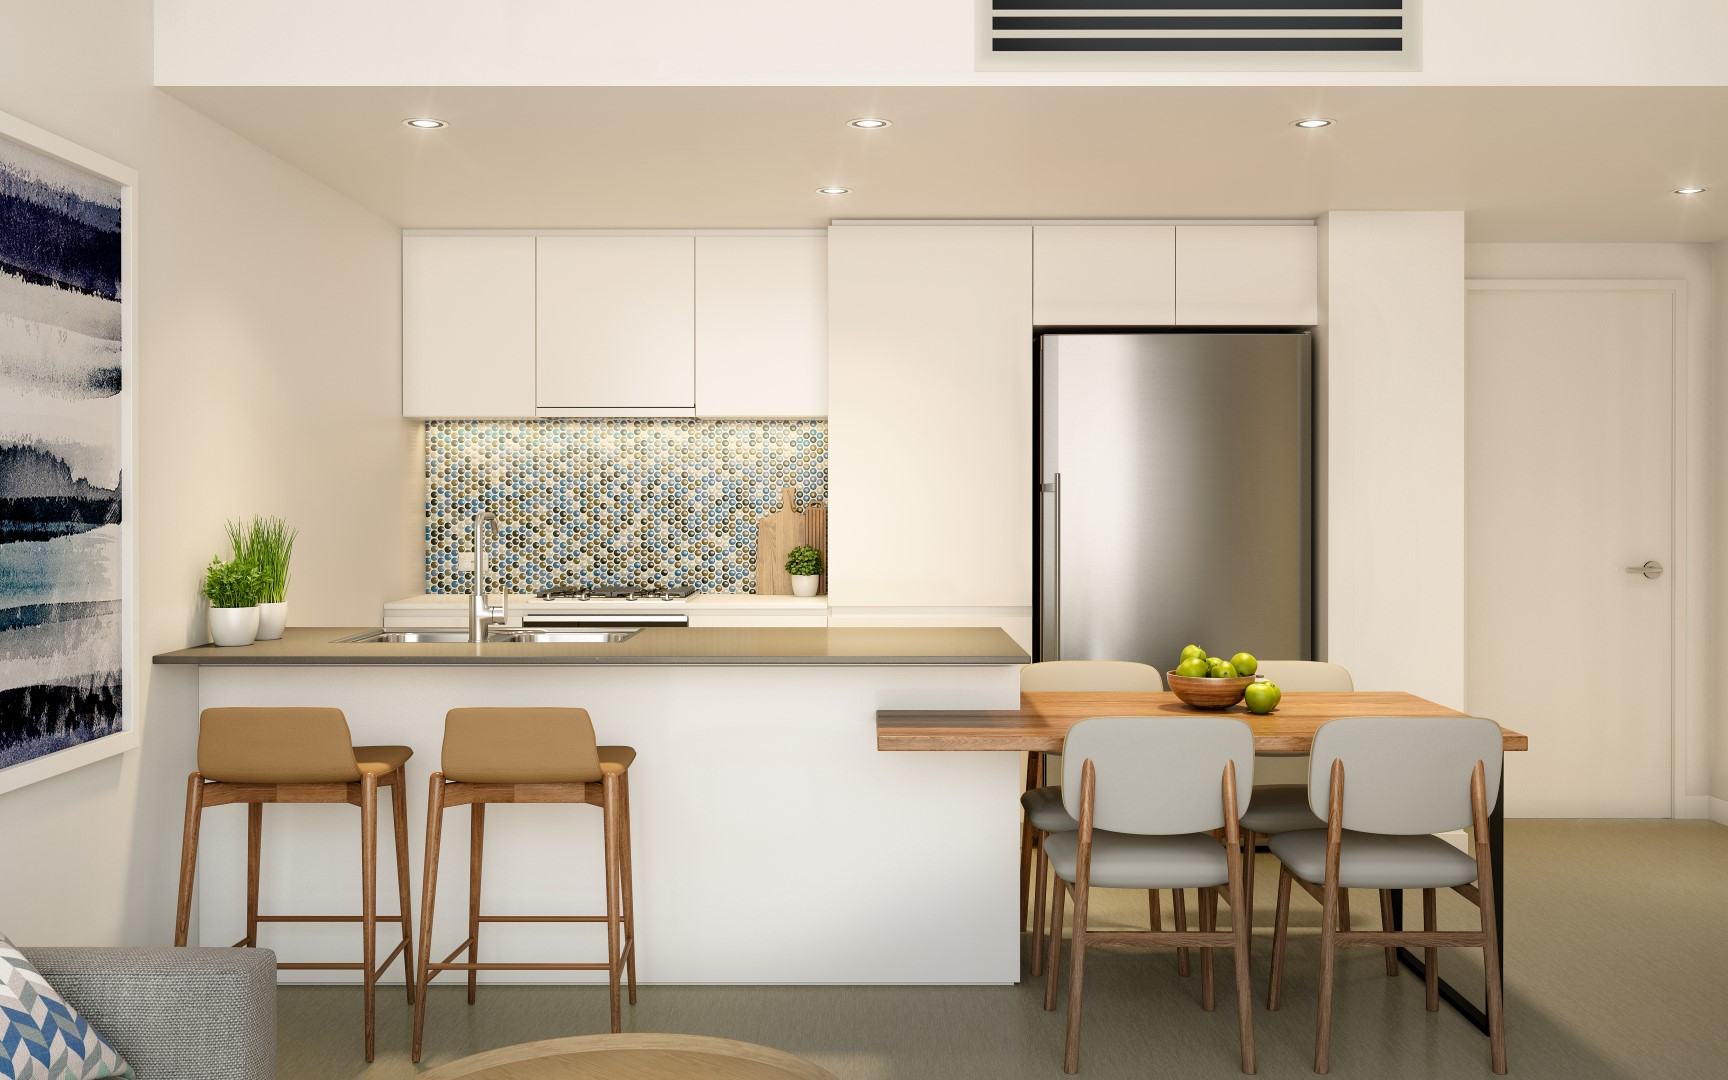 Park Central One apartment kitchen in Woolloongabba Queensland